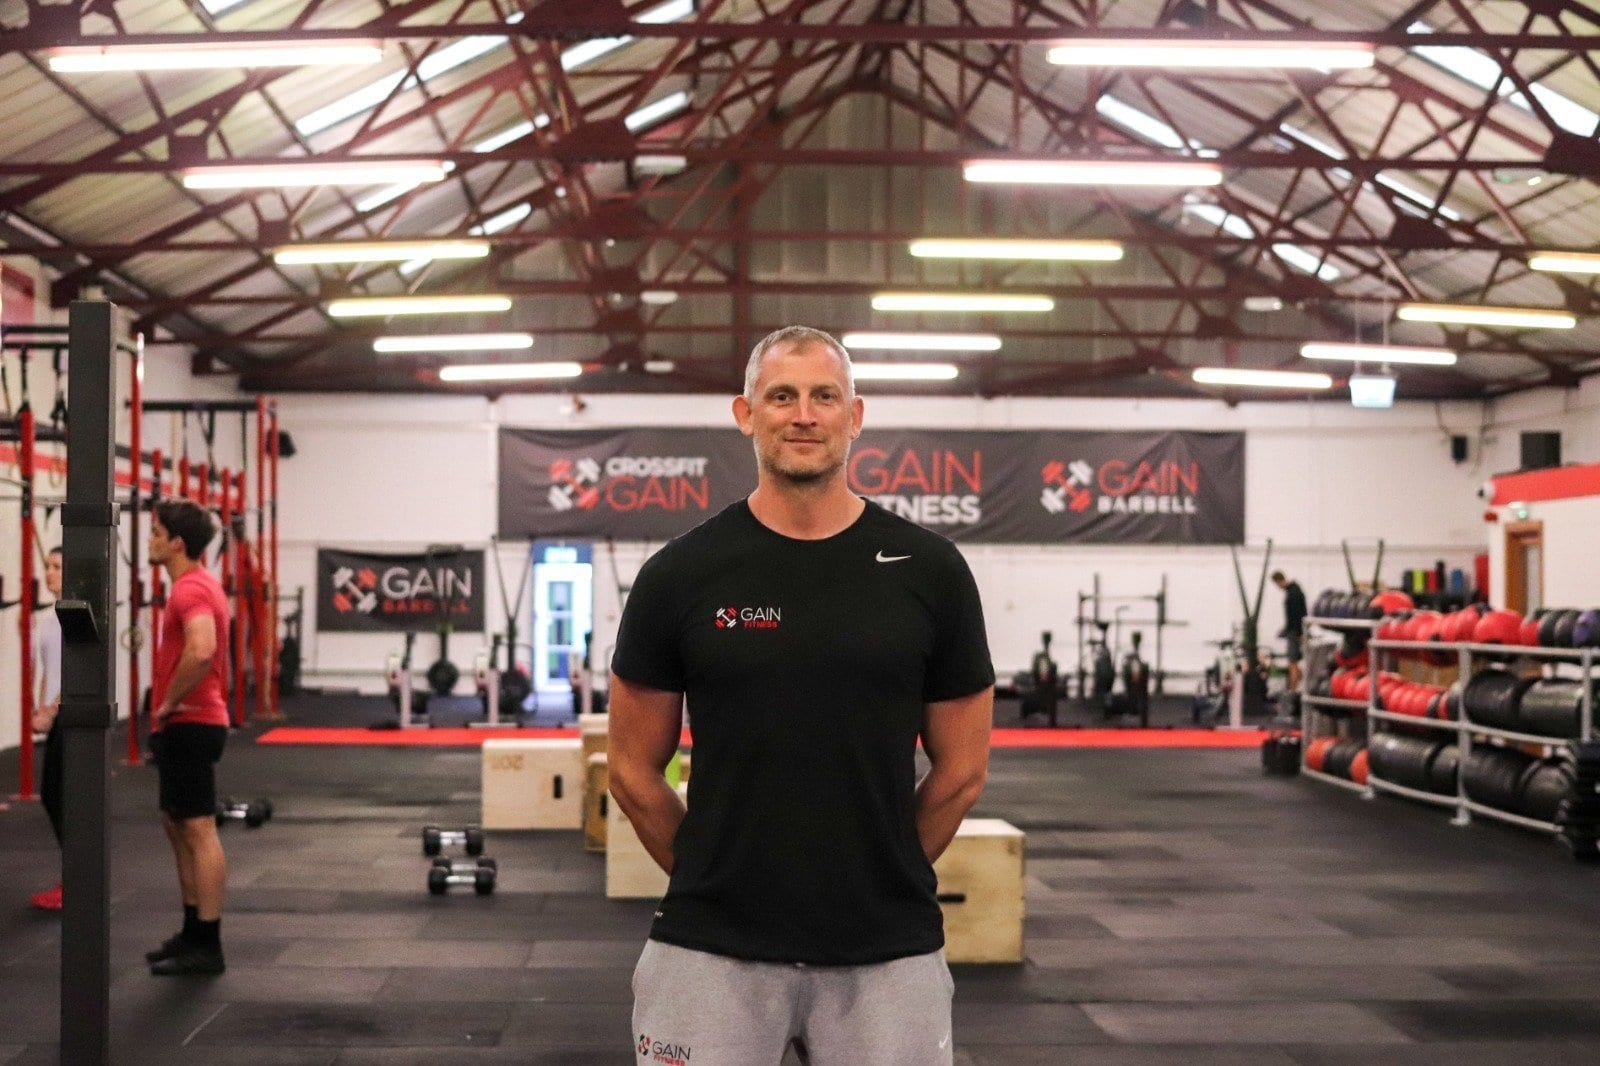 Tom Mahood Owner of GAIN Fitness Norwich